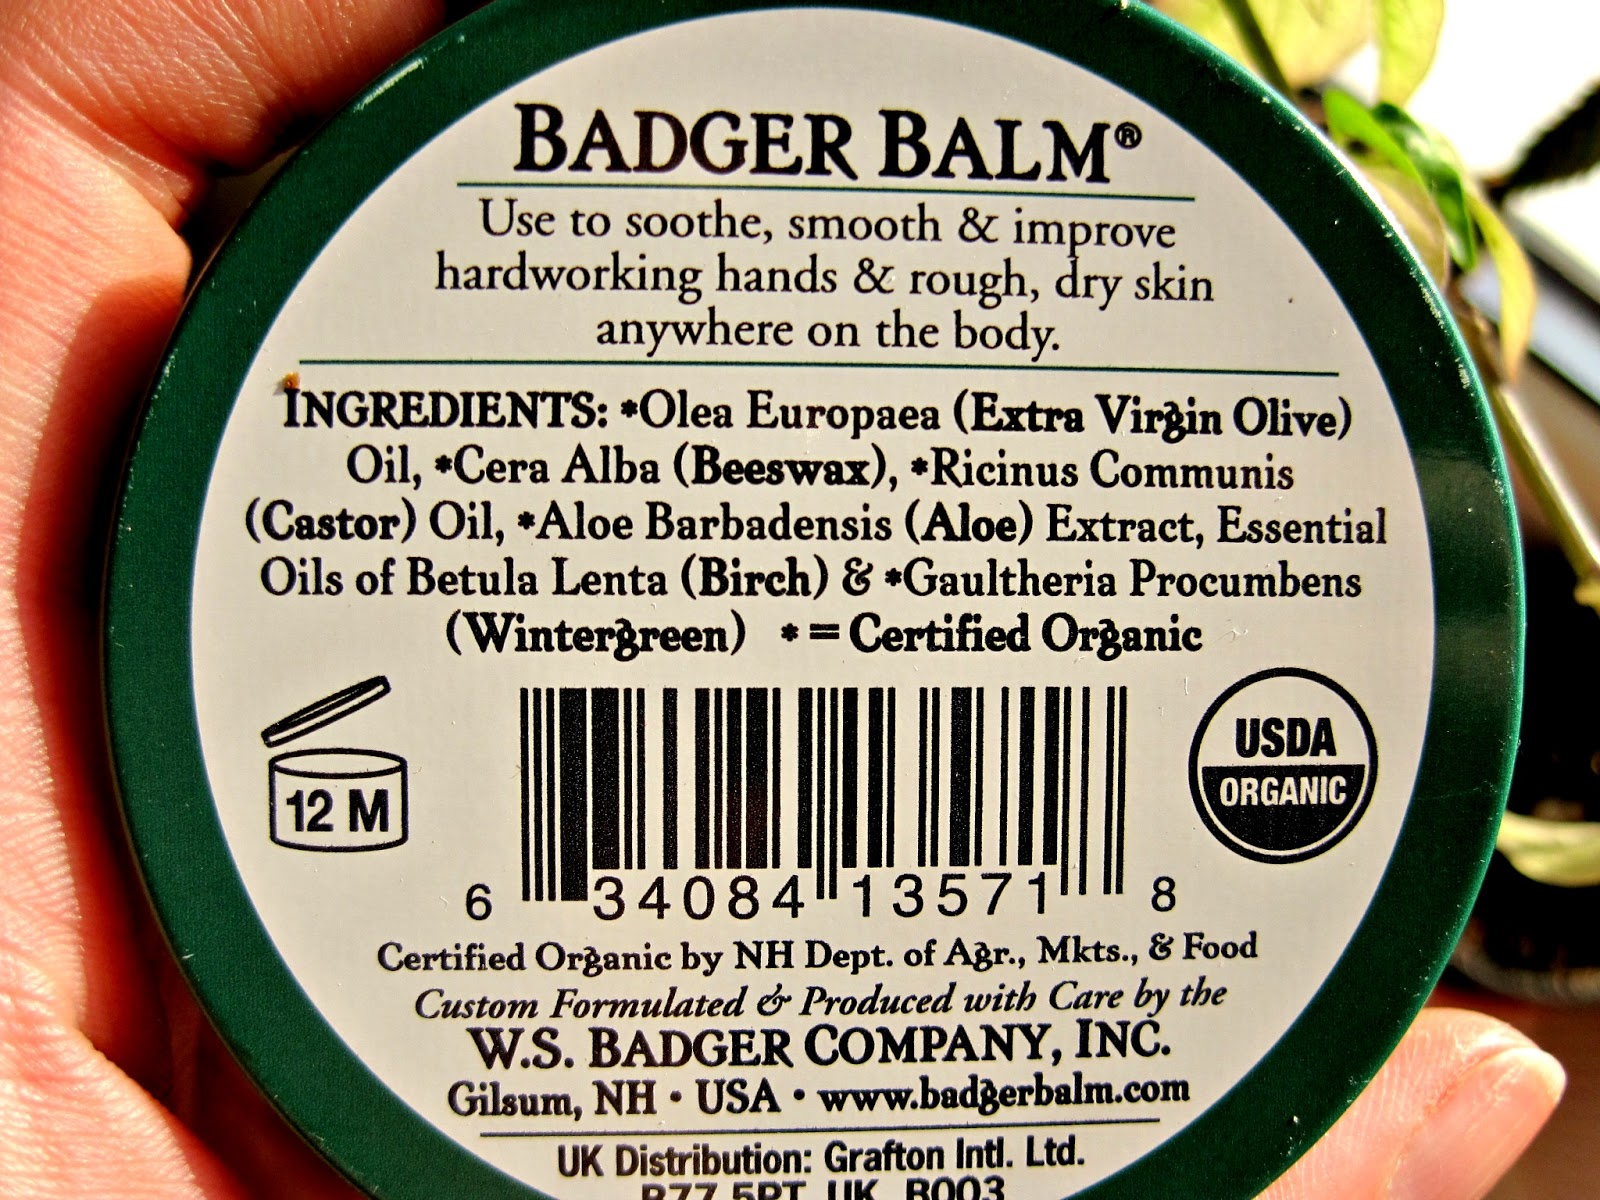 badger balm ingredients hands company hardworking grail fastest addition holy immense form another plus